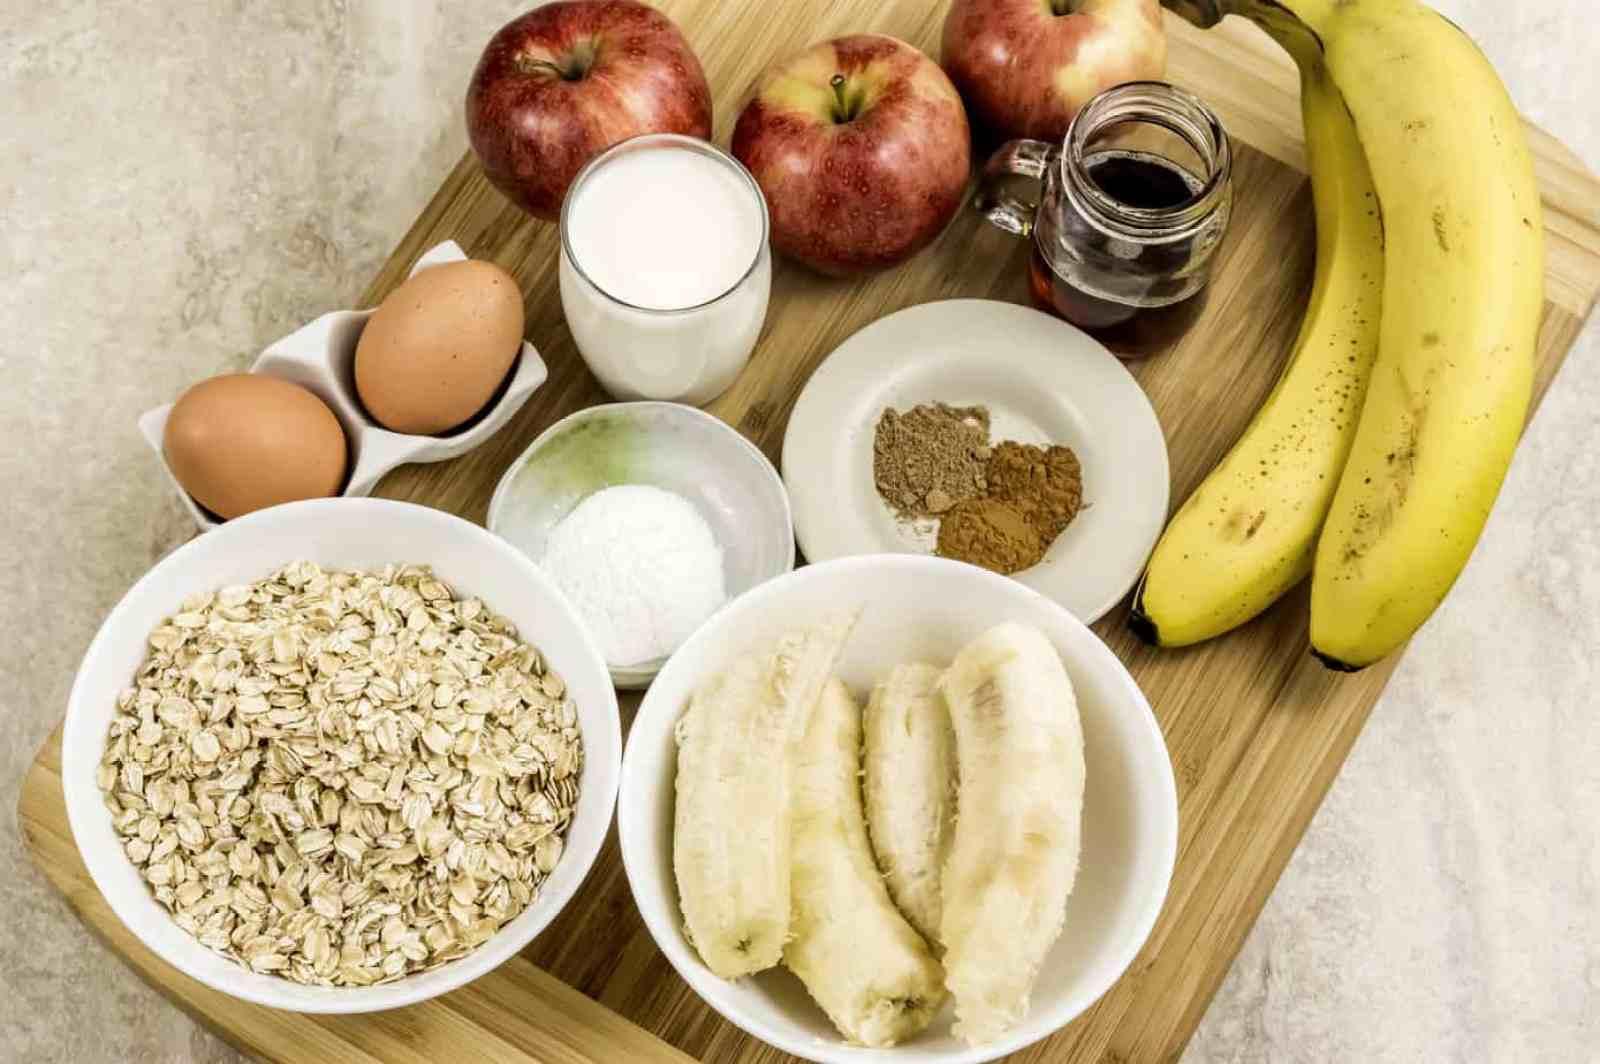 Apple Cinnamon Oatmeal Muffins Ingredients